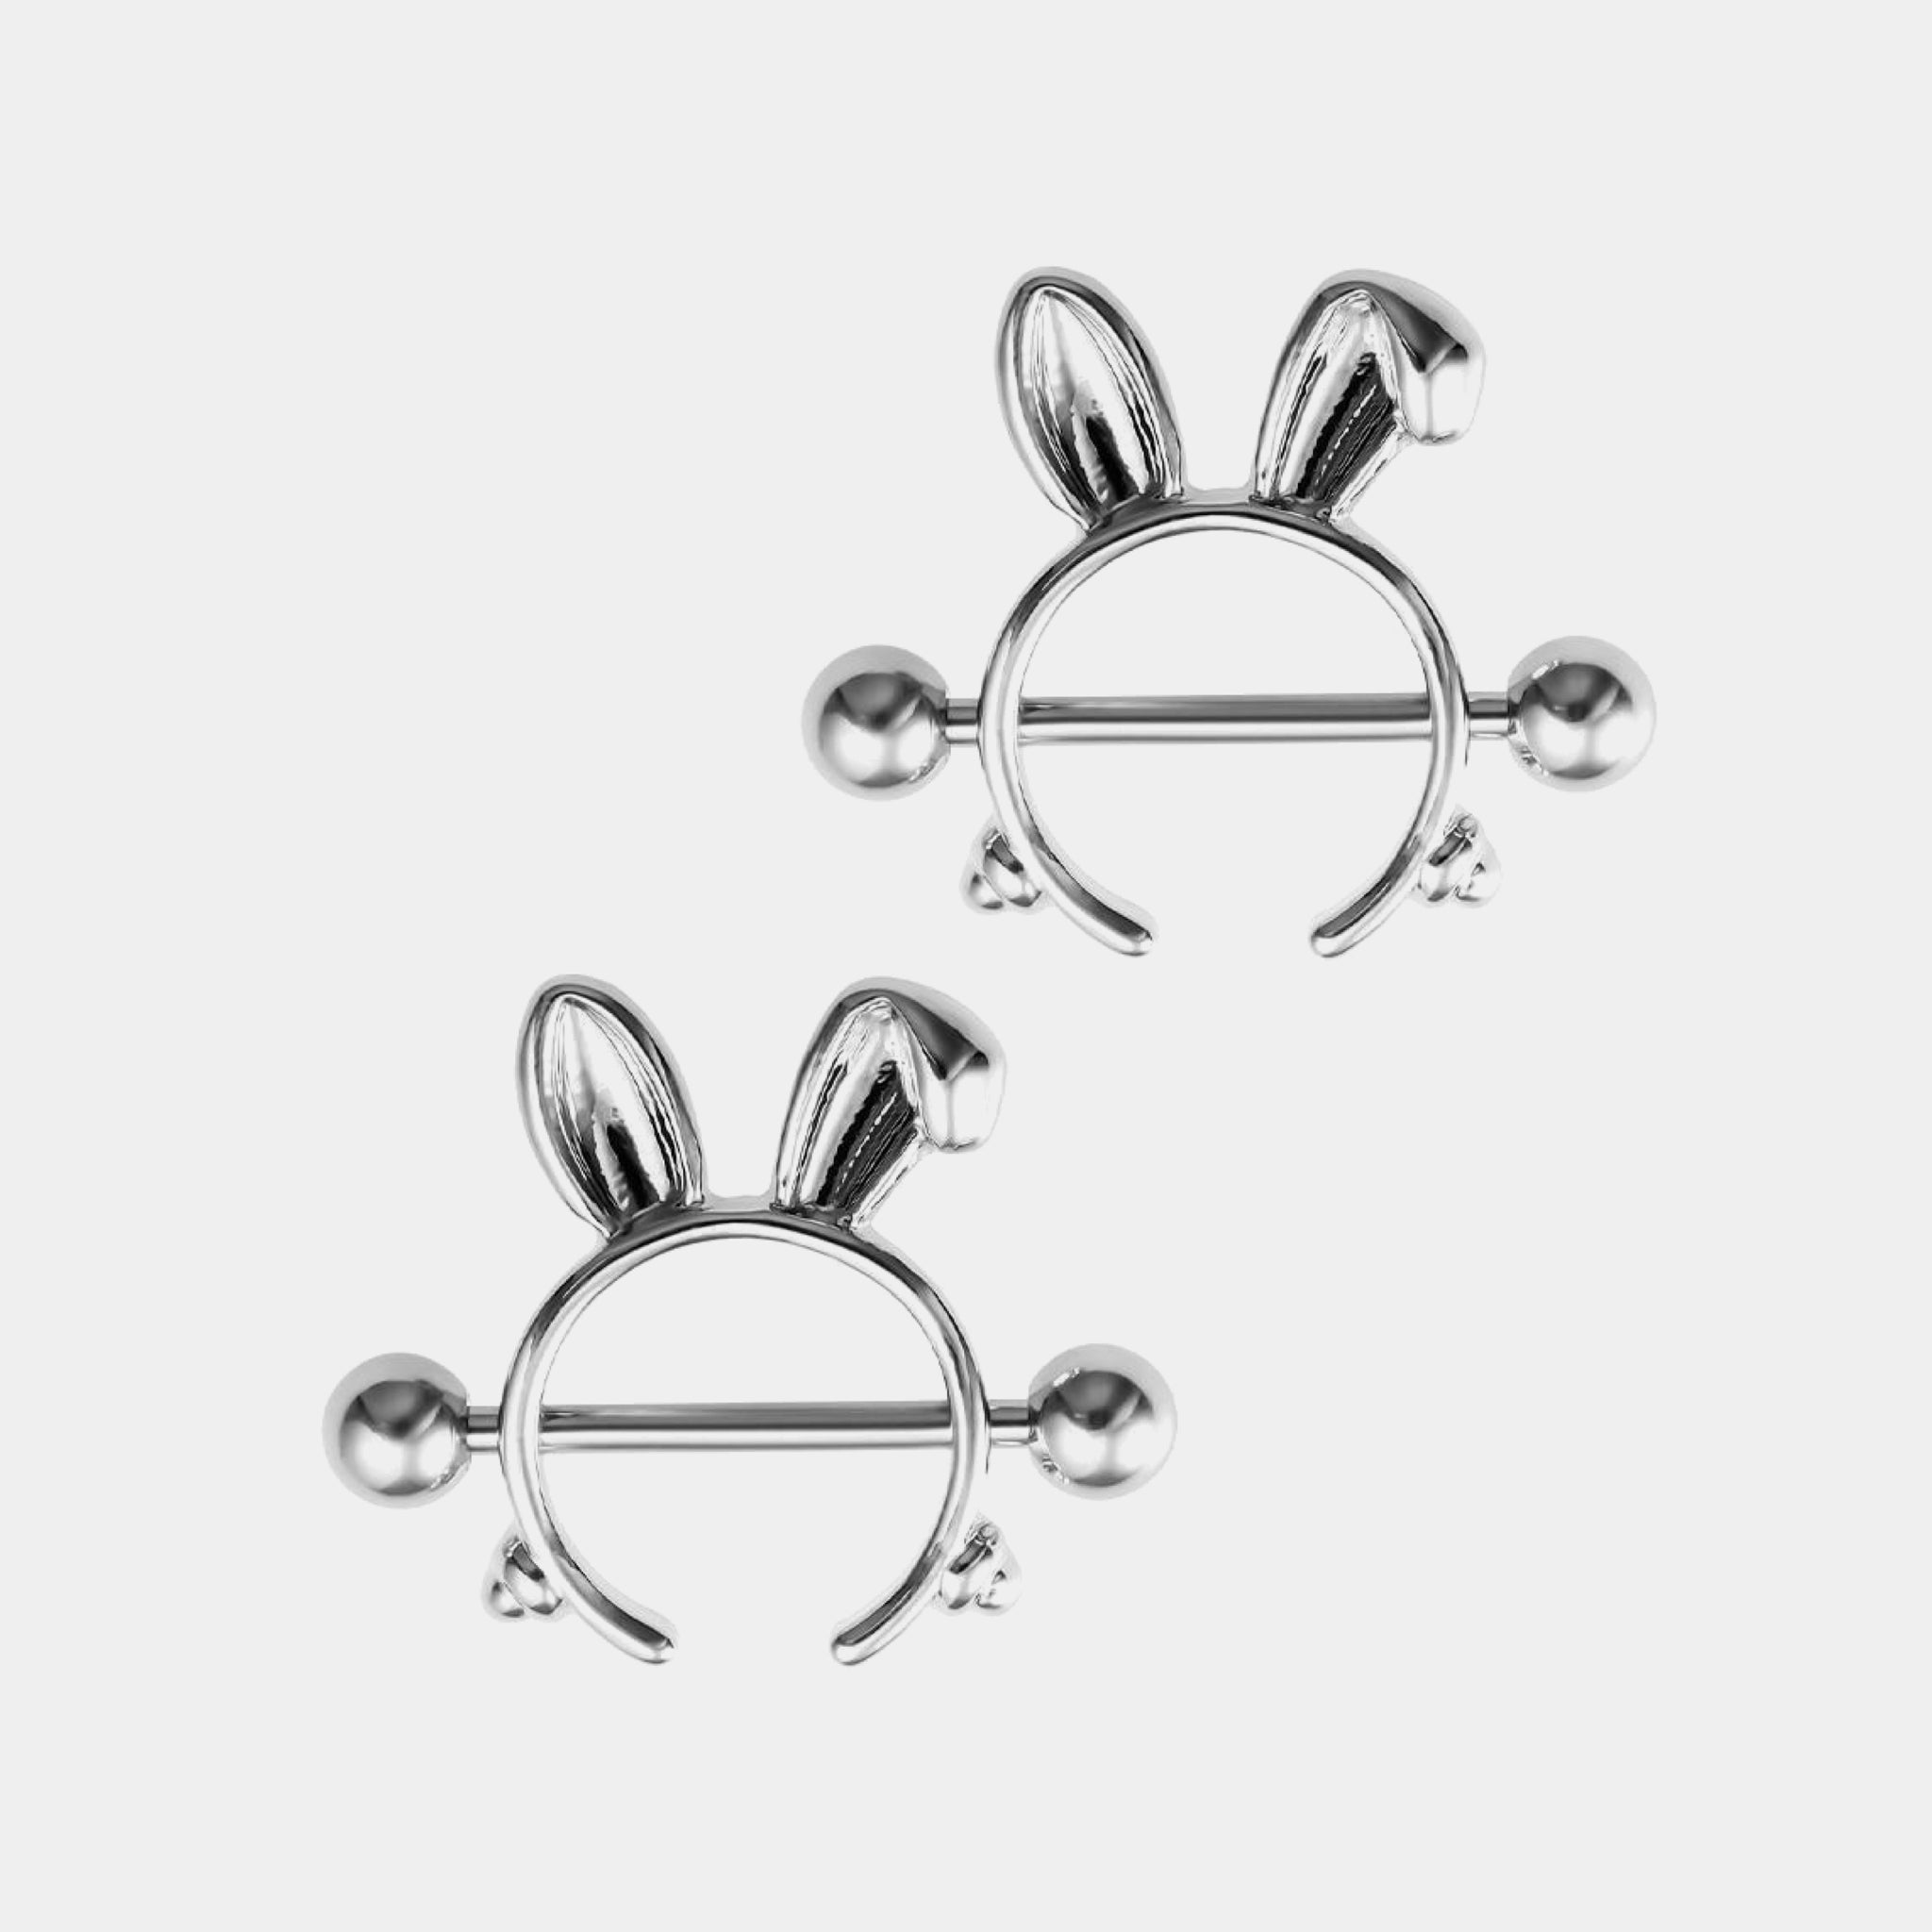 1 Pair Rabbit Nipple Rings 316L Stainless Steel Nipple Cover Punk Silver Color Body Jewelry Gift